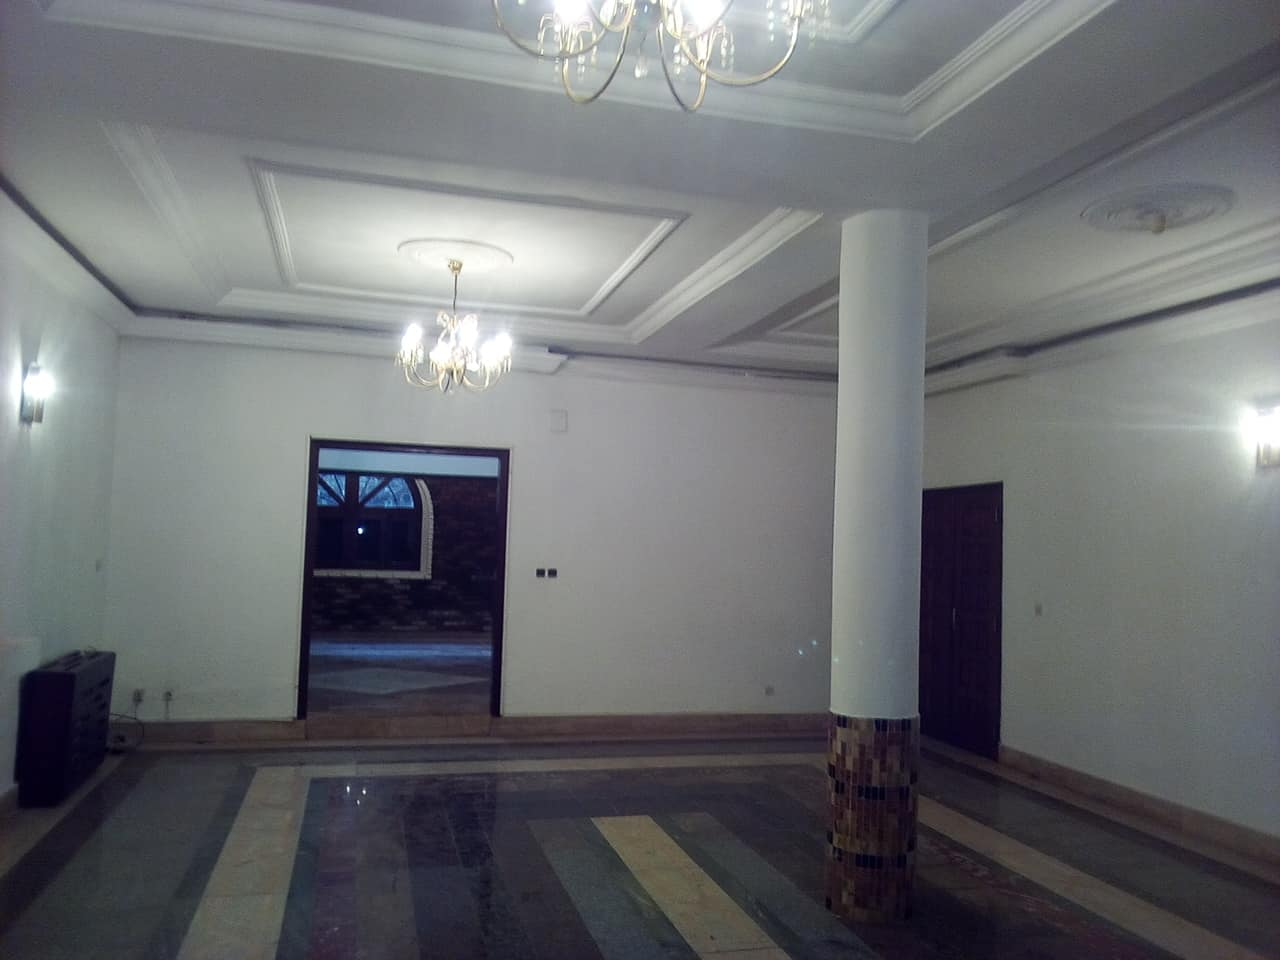 Office to rent at Yaoundé, Bastos, nouvelle route villa avec piscine - 1500 m2 - 2 000 000 FCFA